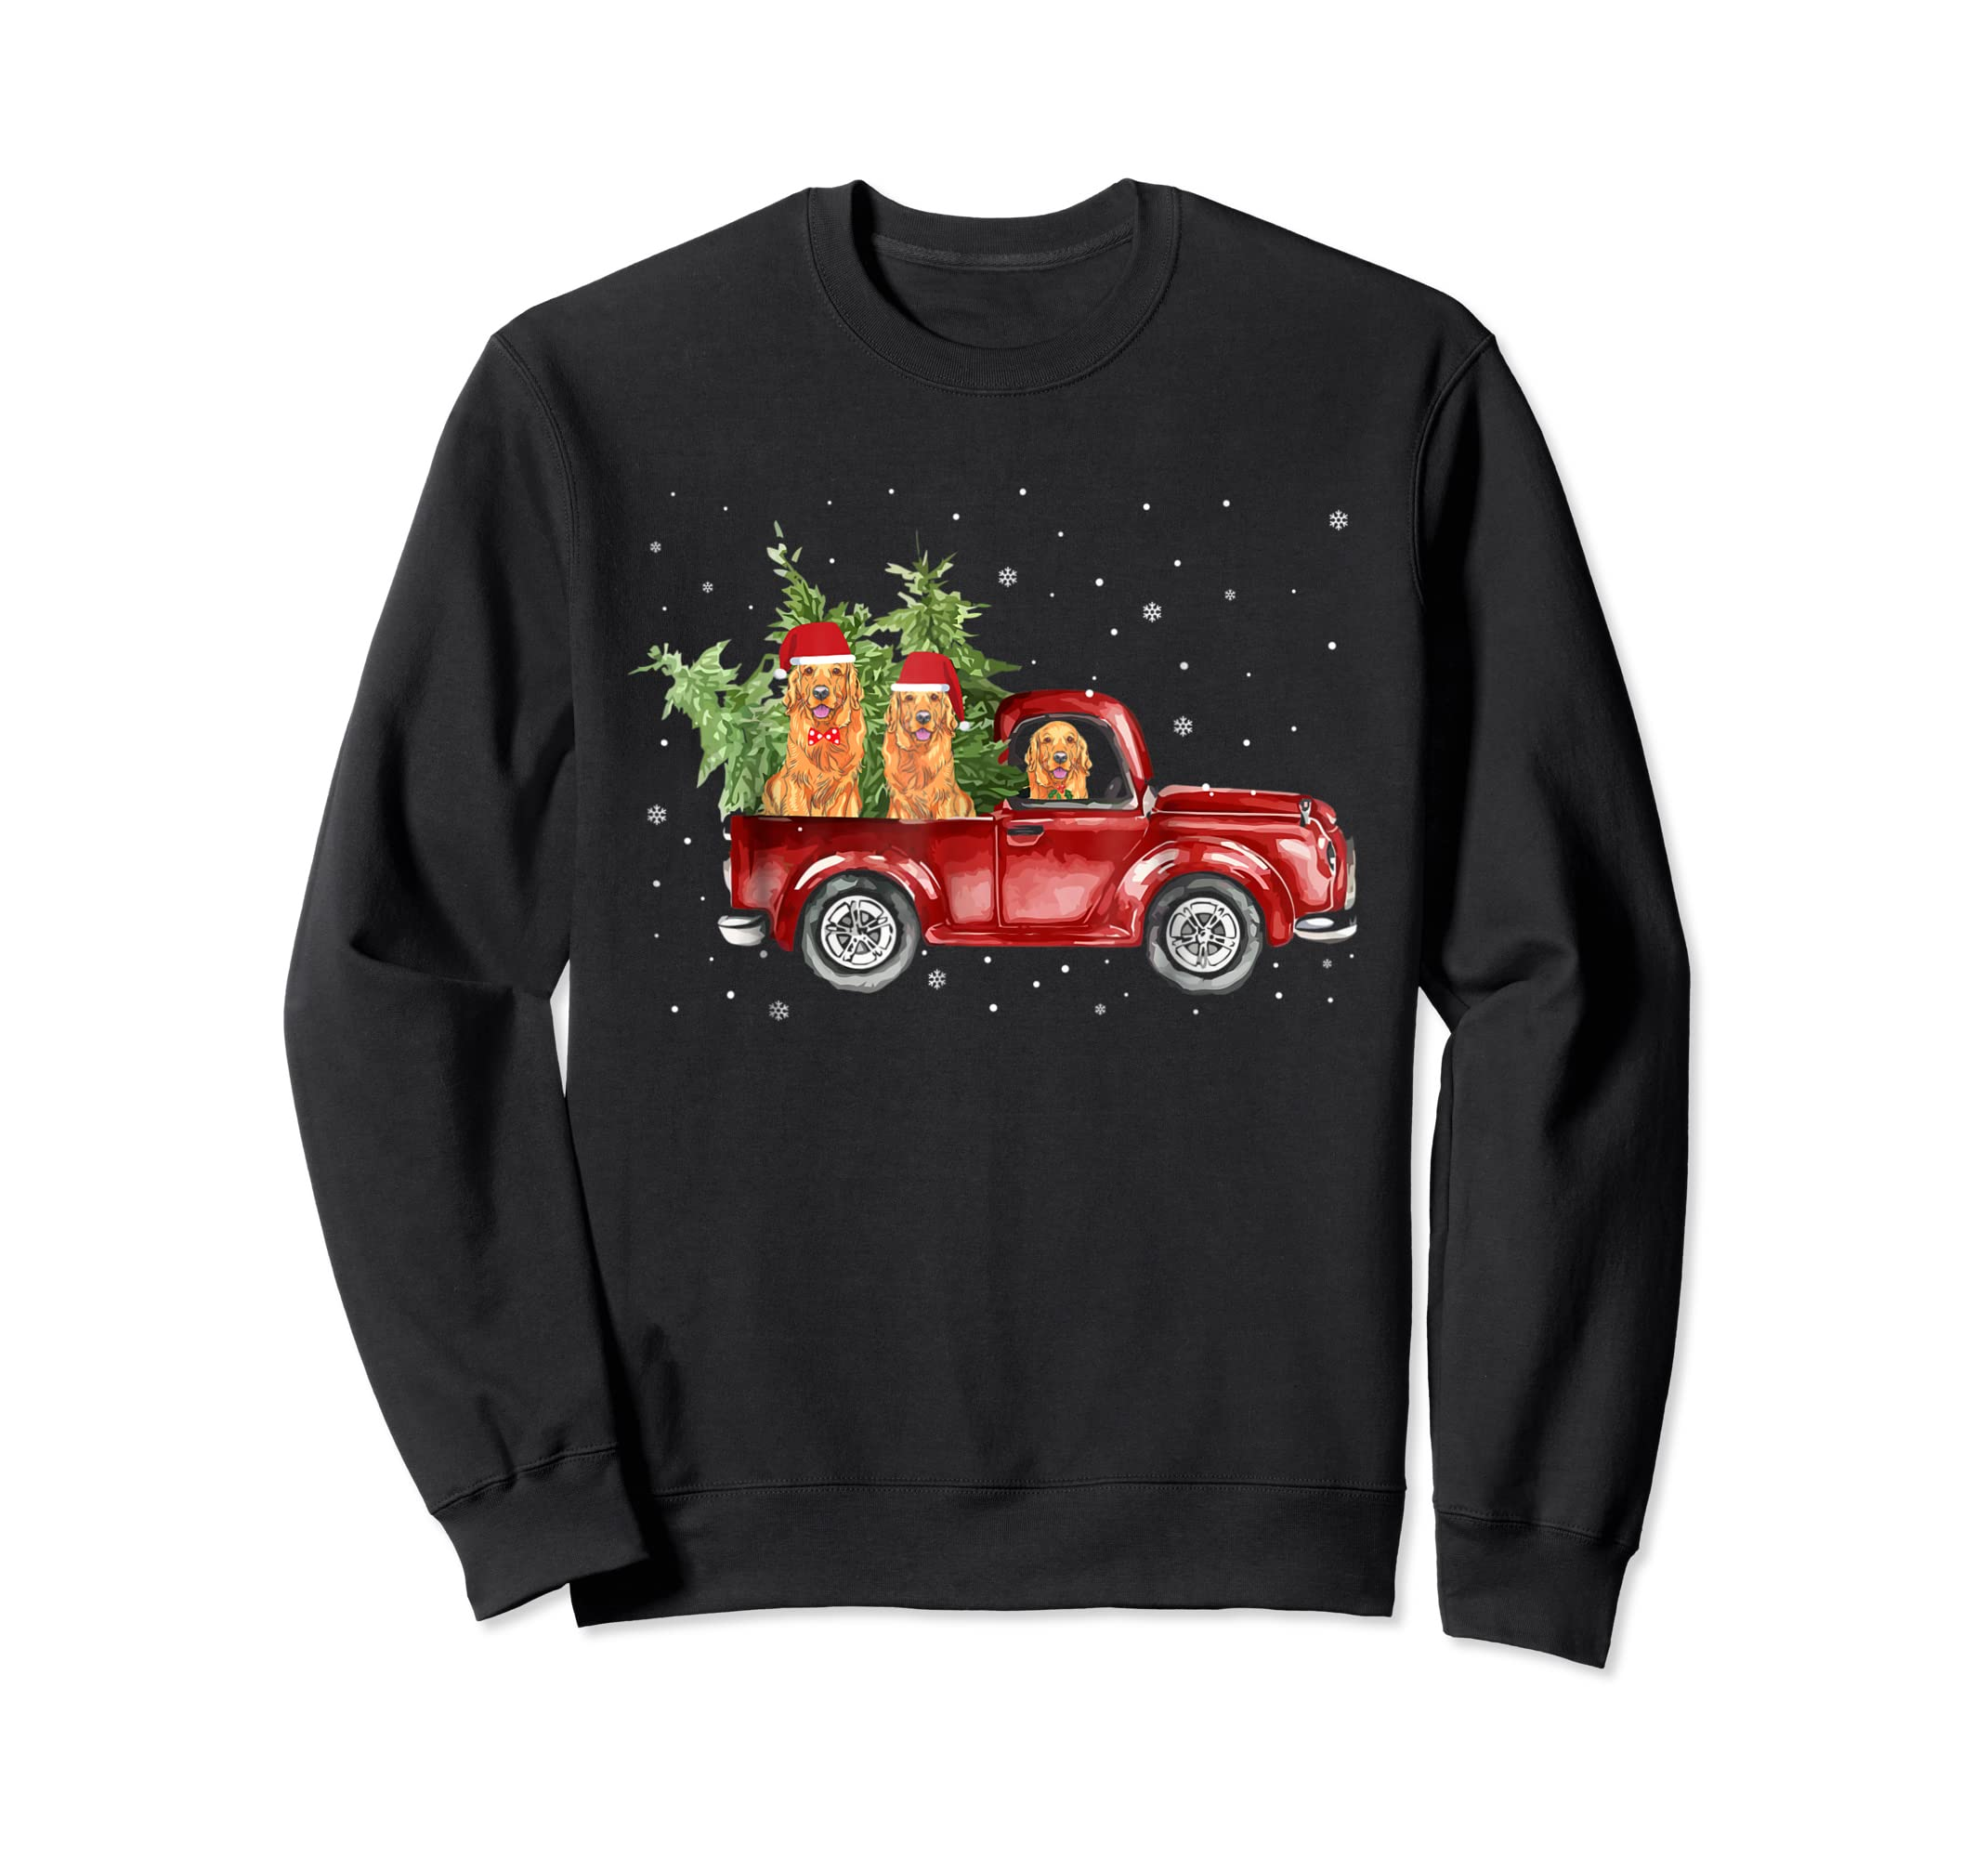 Golden Retriever Pickup Truck Christmas Tshirt-Sweatshirt-Black